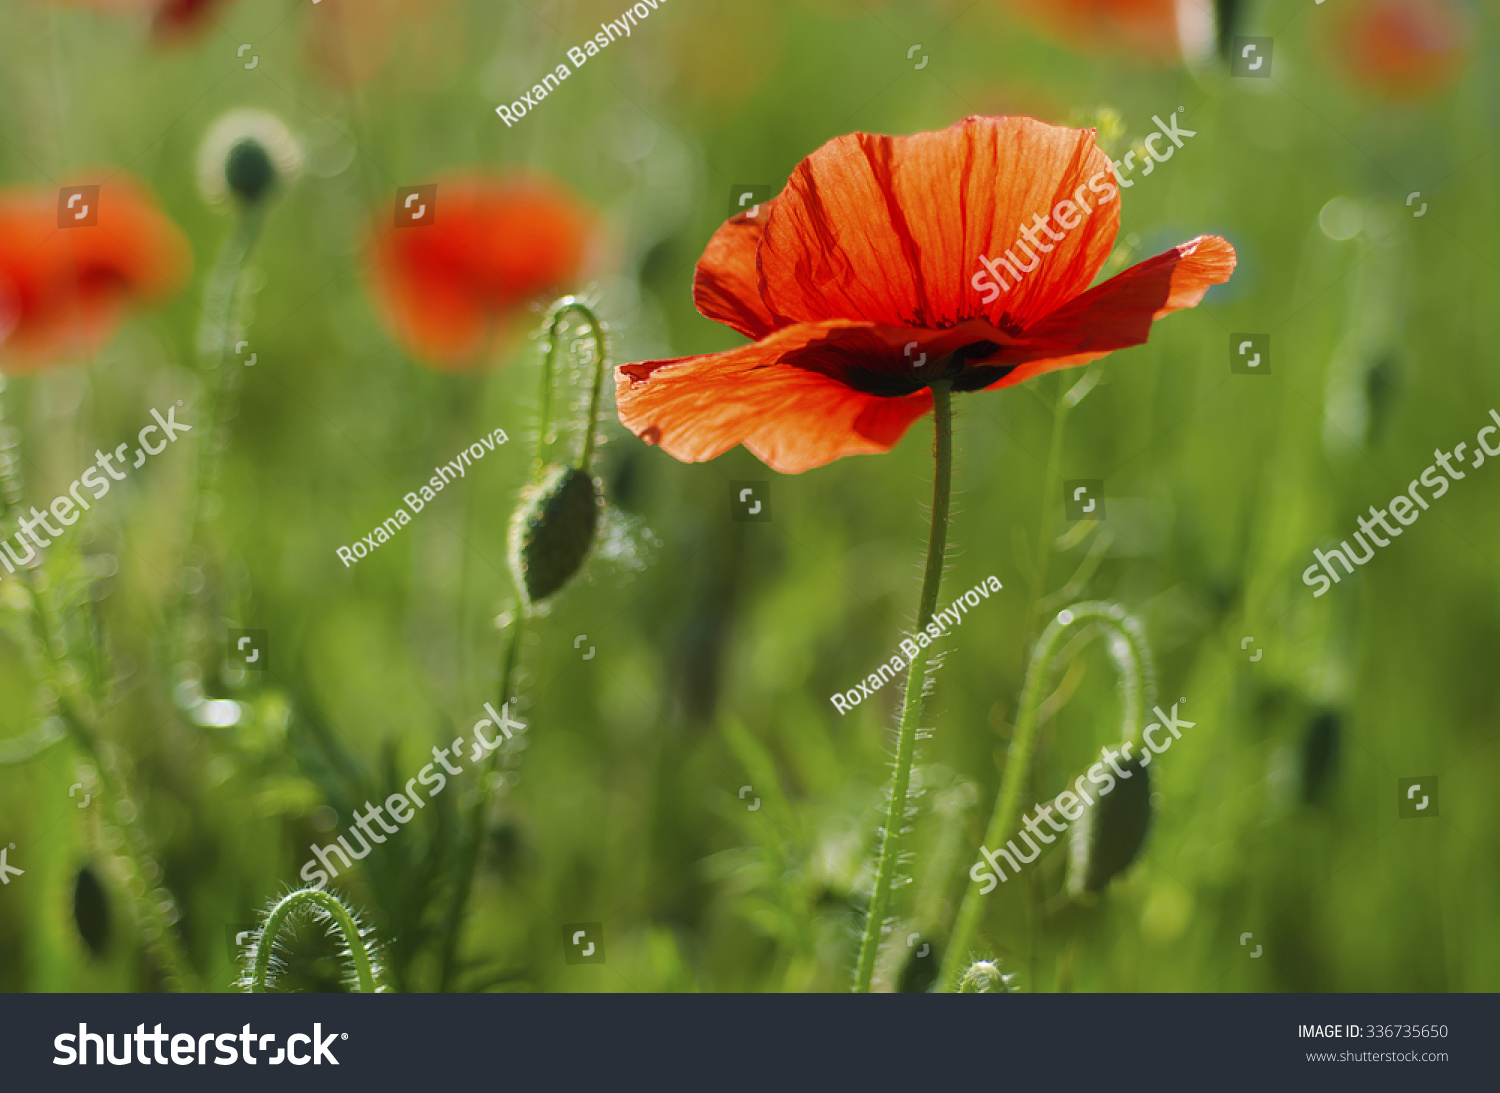 Red poppy in a green grass field, natural floral background #336735650